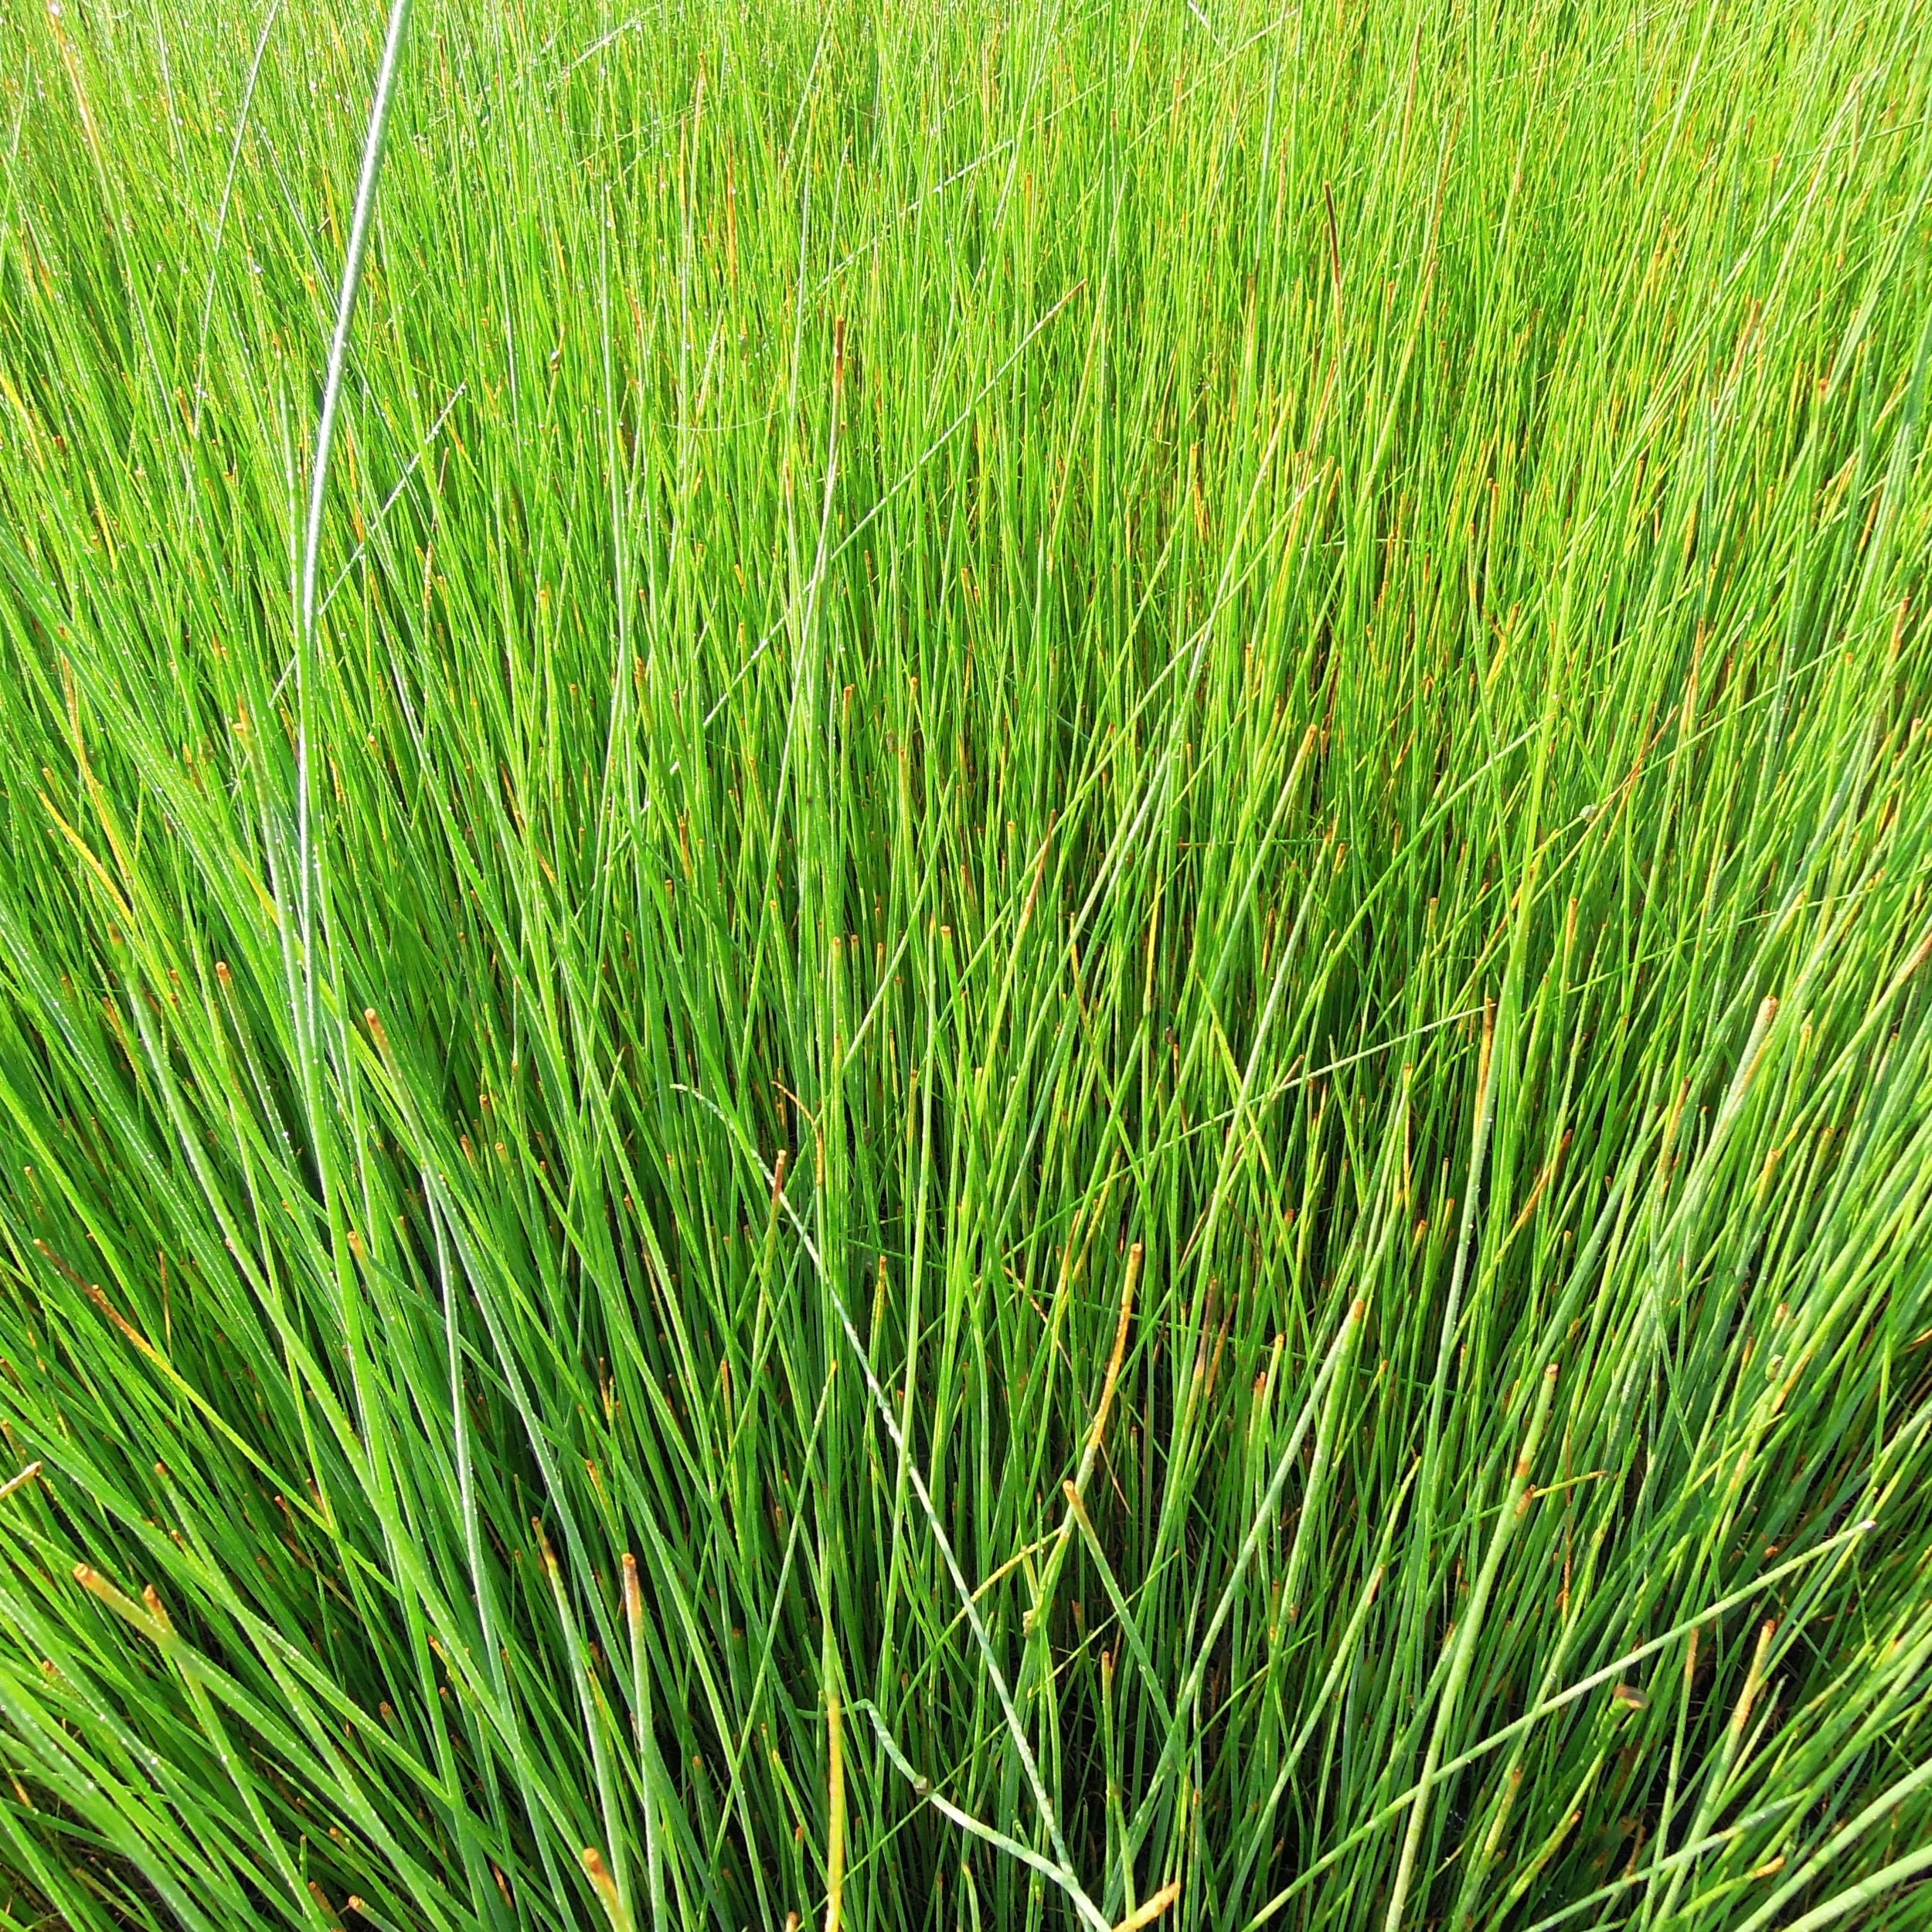 Juncus effusus, a.k.a. Soft or Common Rush - Juncus effusus is the species most commonly called for in stormwater treatment systems. Designers often suggest planting it in water up to 6